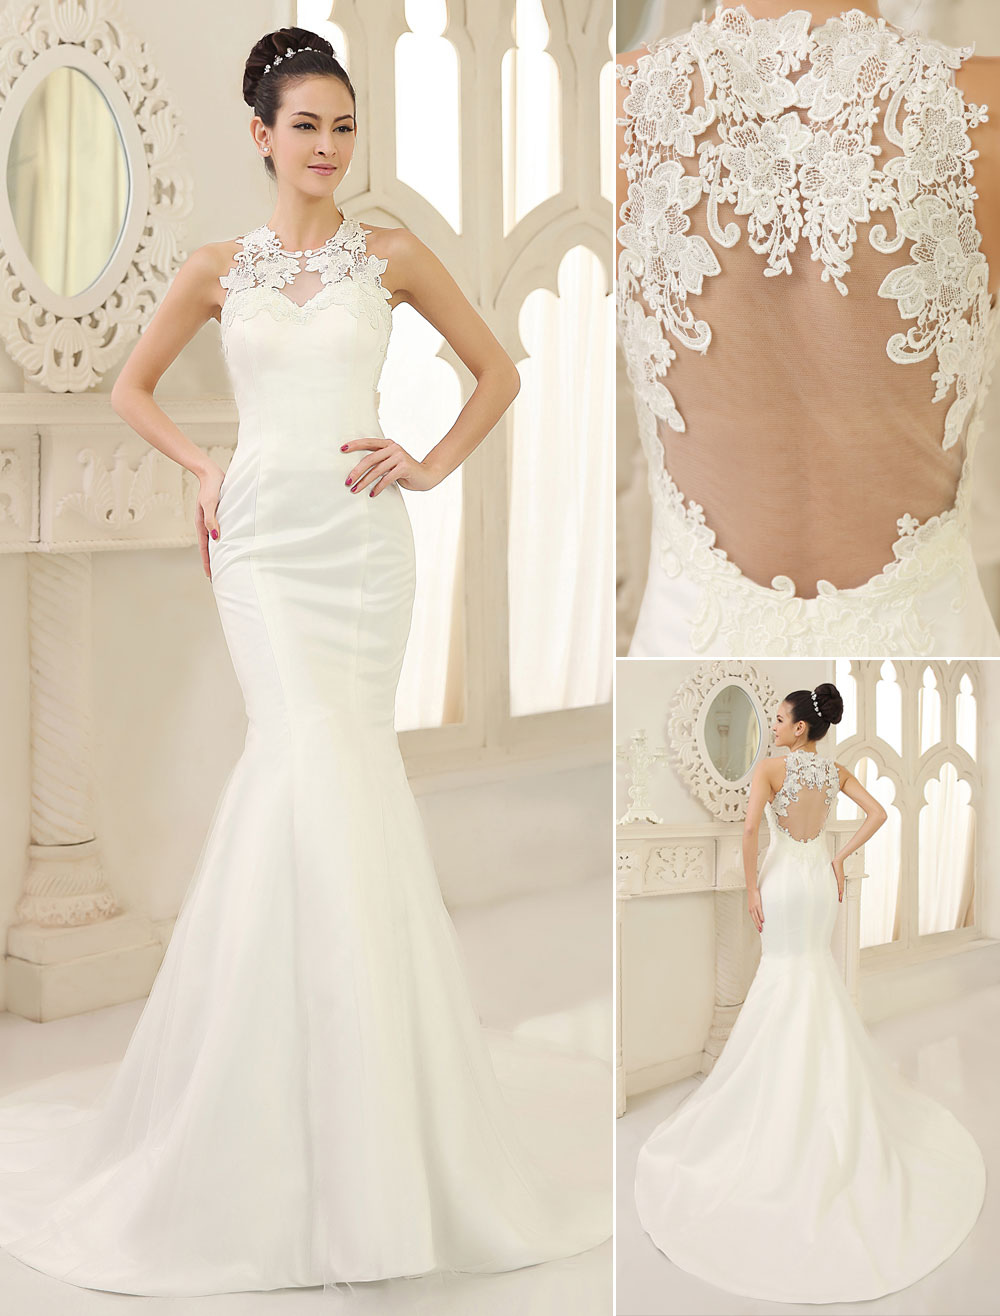 Wedding Dresses Mermaid Bridal Dress Lace Applique Satin Illusion Keyhole  fishtail Wedding Gown Milanoo